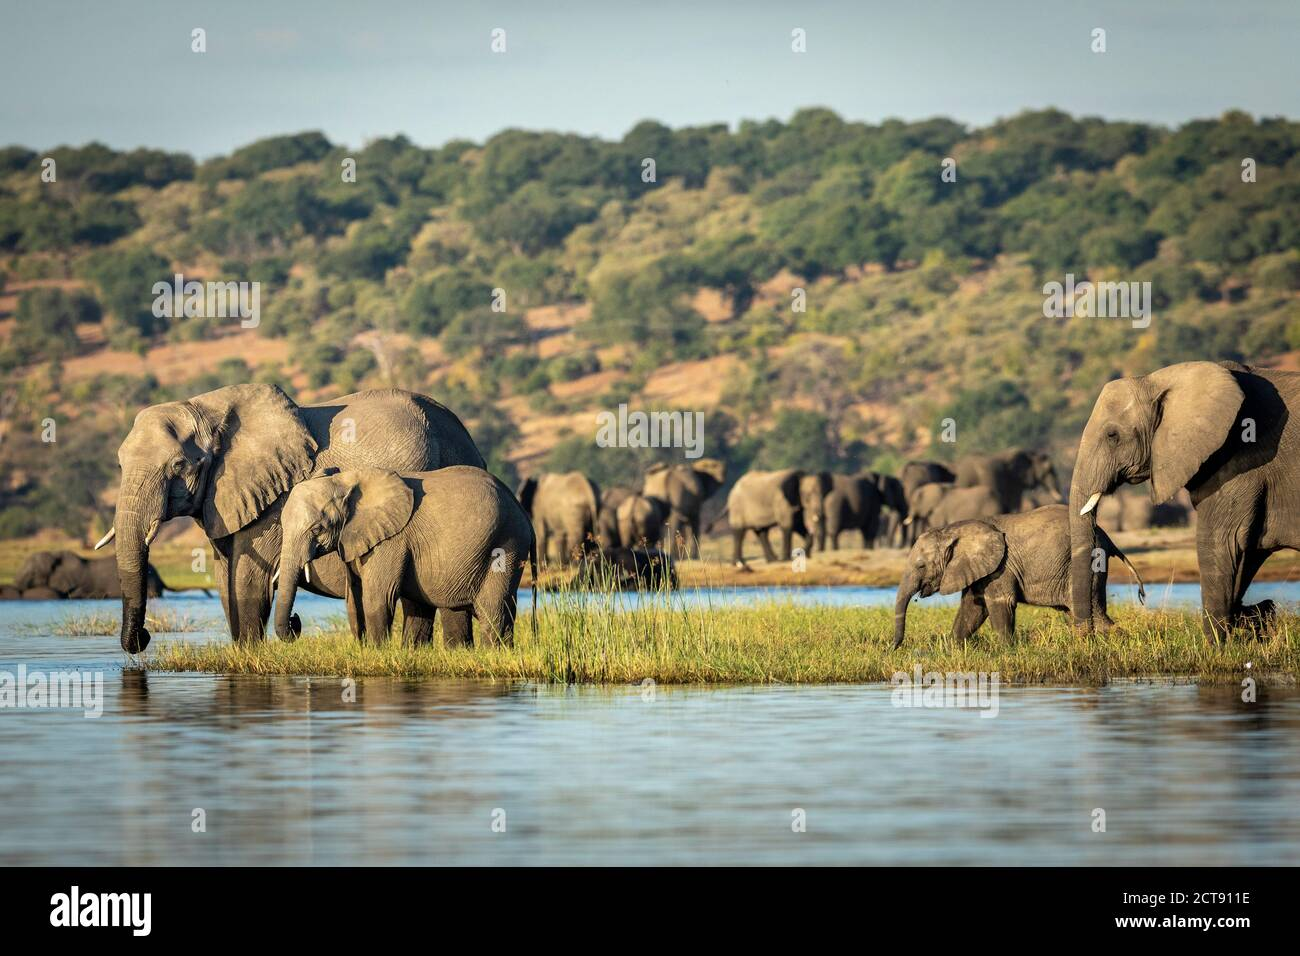 Elephants standing on a grassy bank of Chobe River drinking water in late afternoon in Botswana Stock Photo